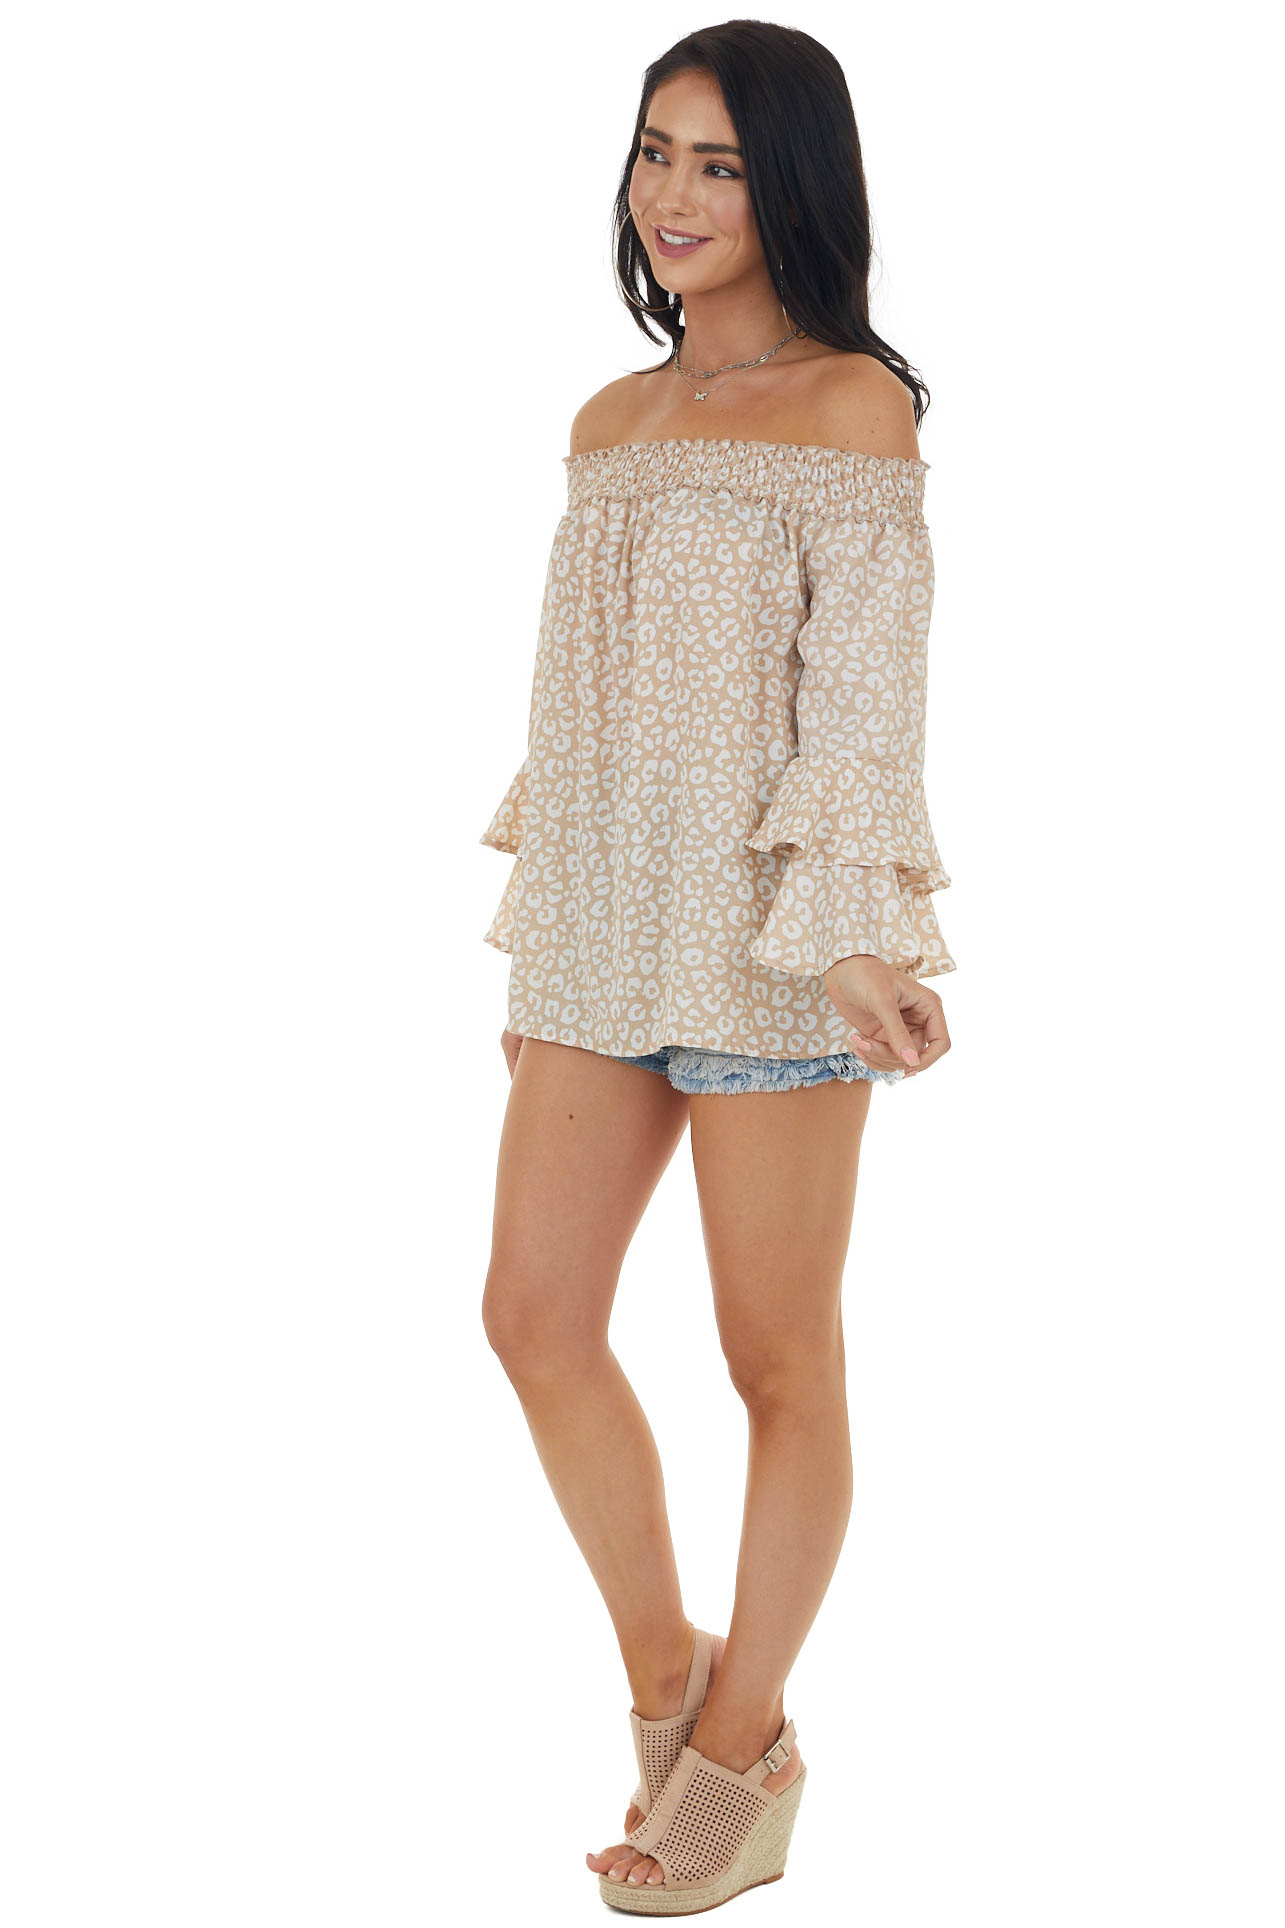 Champagne and Ivory Leopard Print Off the Shoulder Blouse